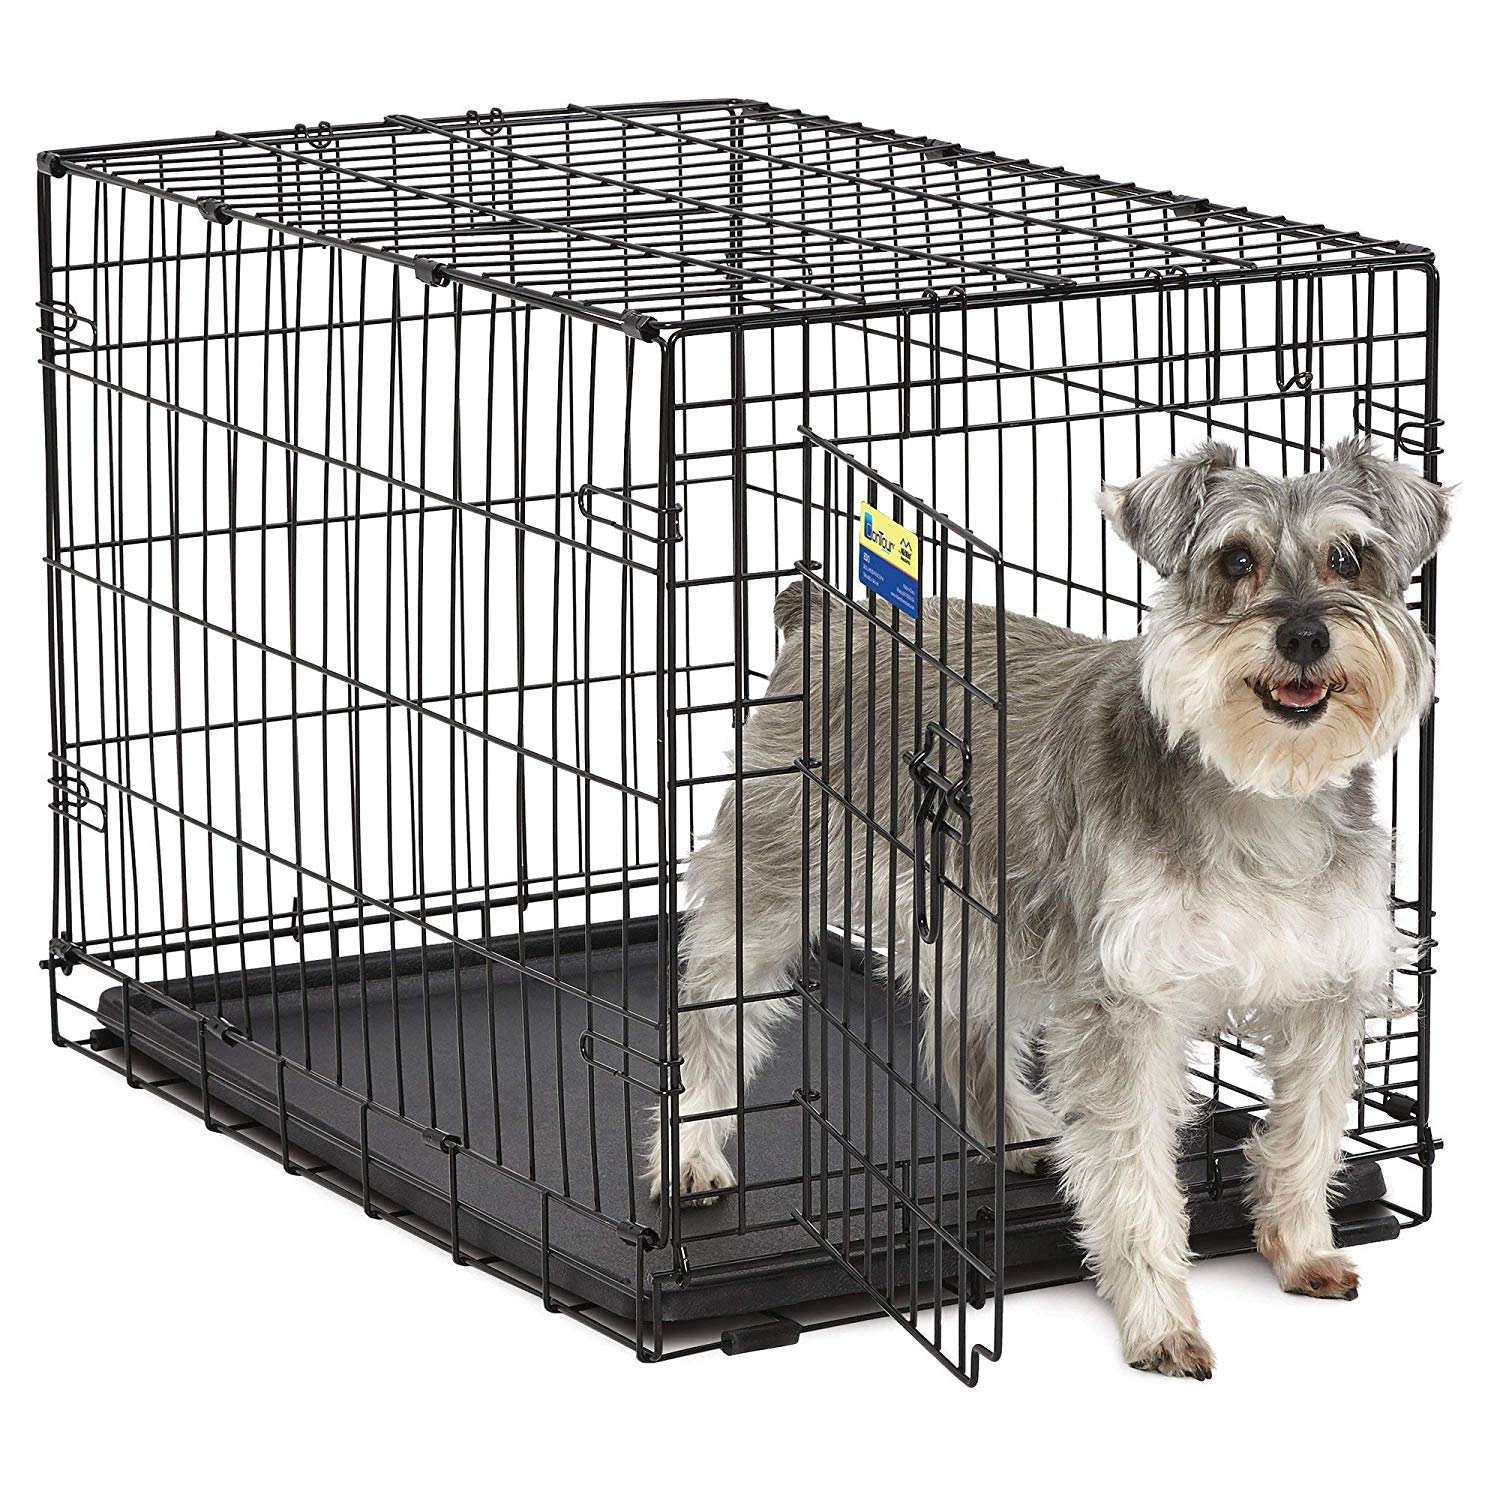 "Midwest Crate Contour Single Door Dog Crate 30"" Image"